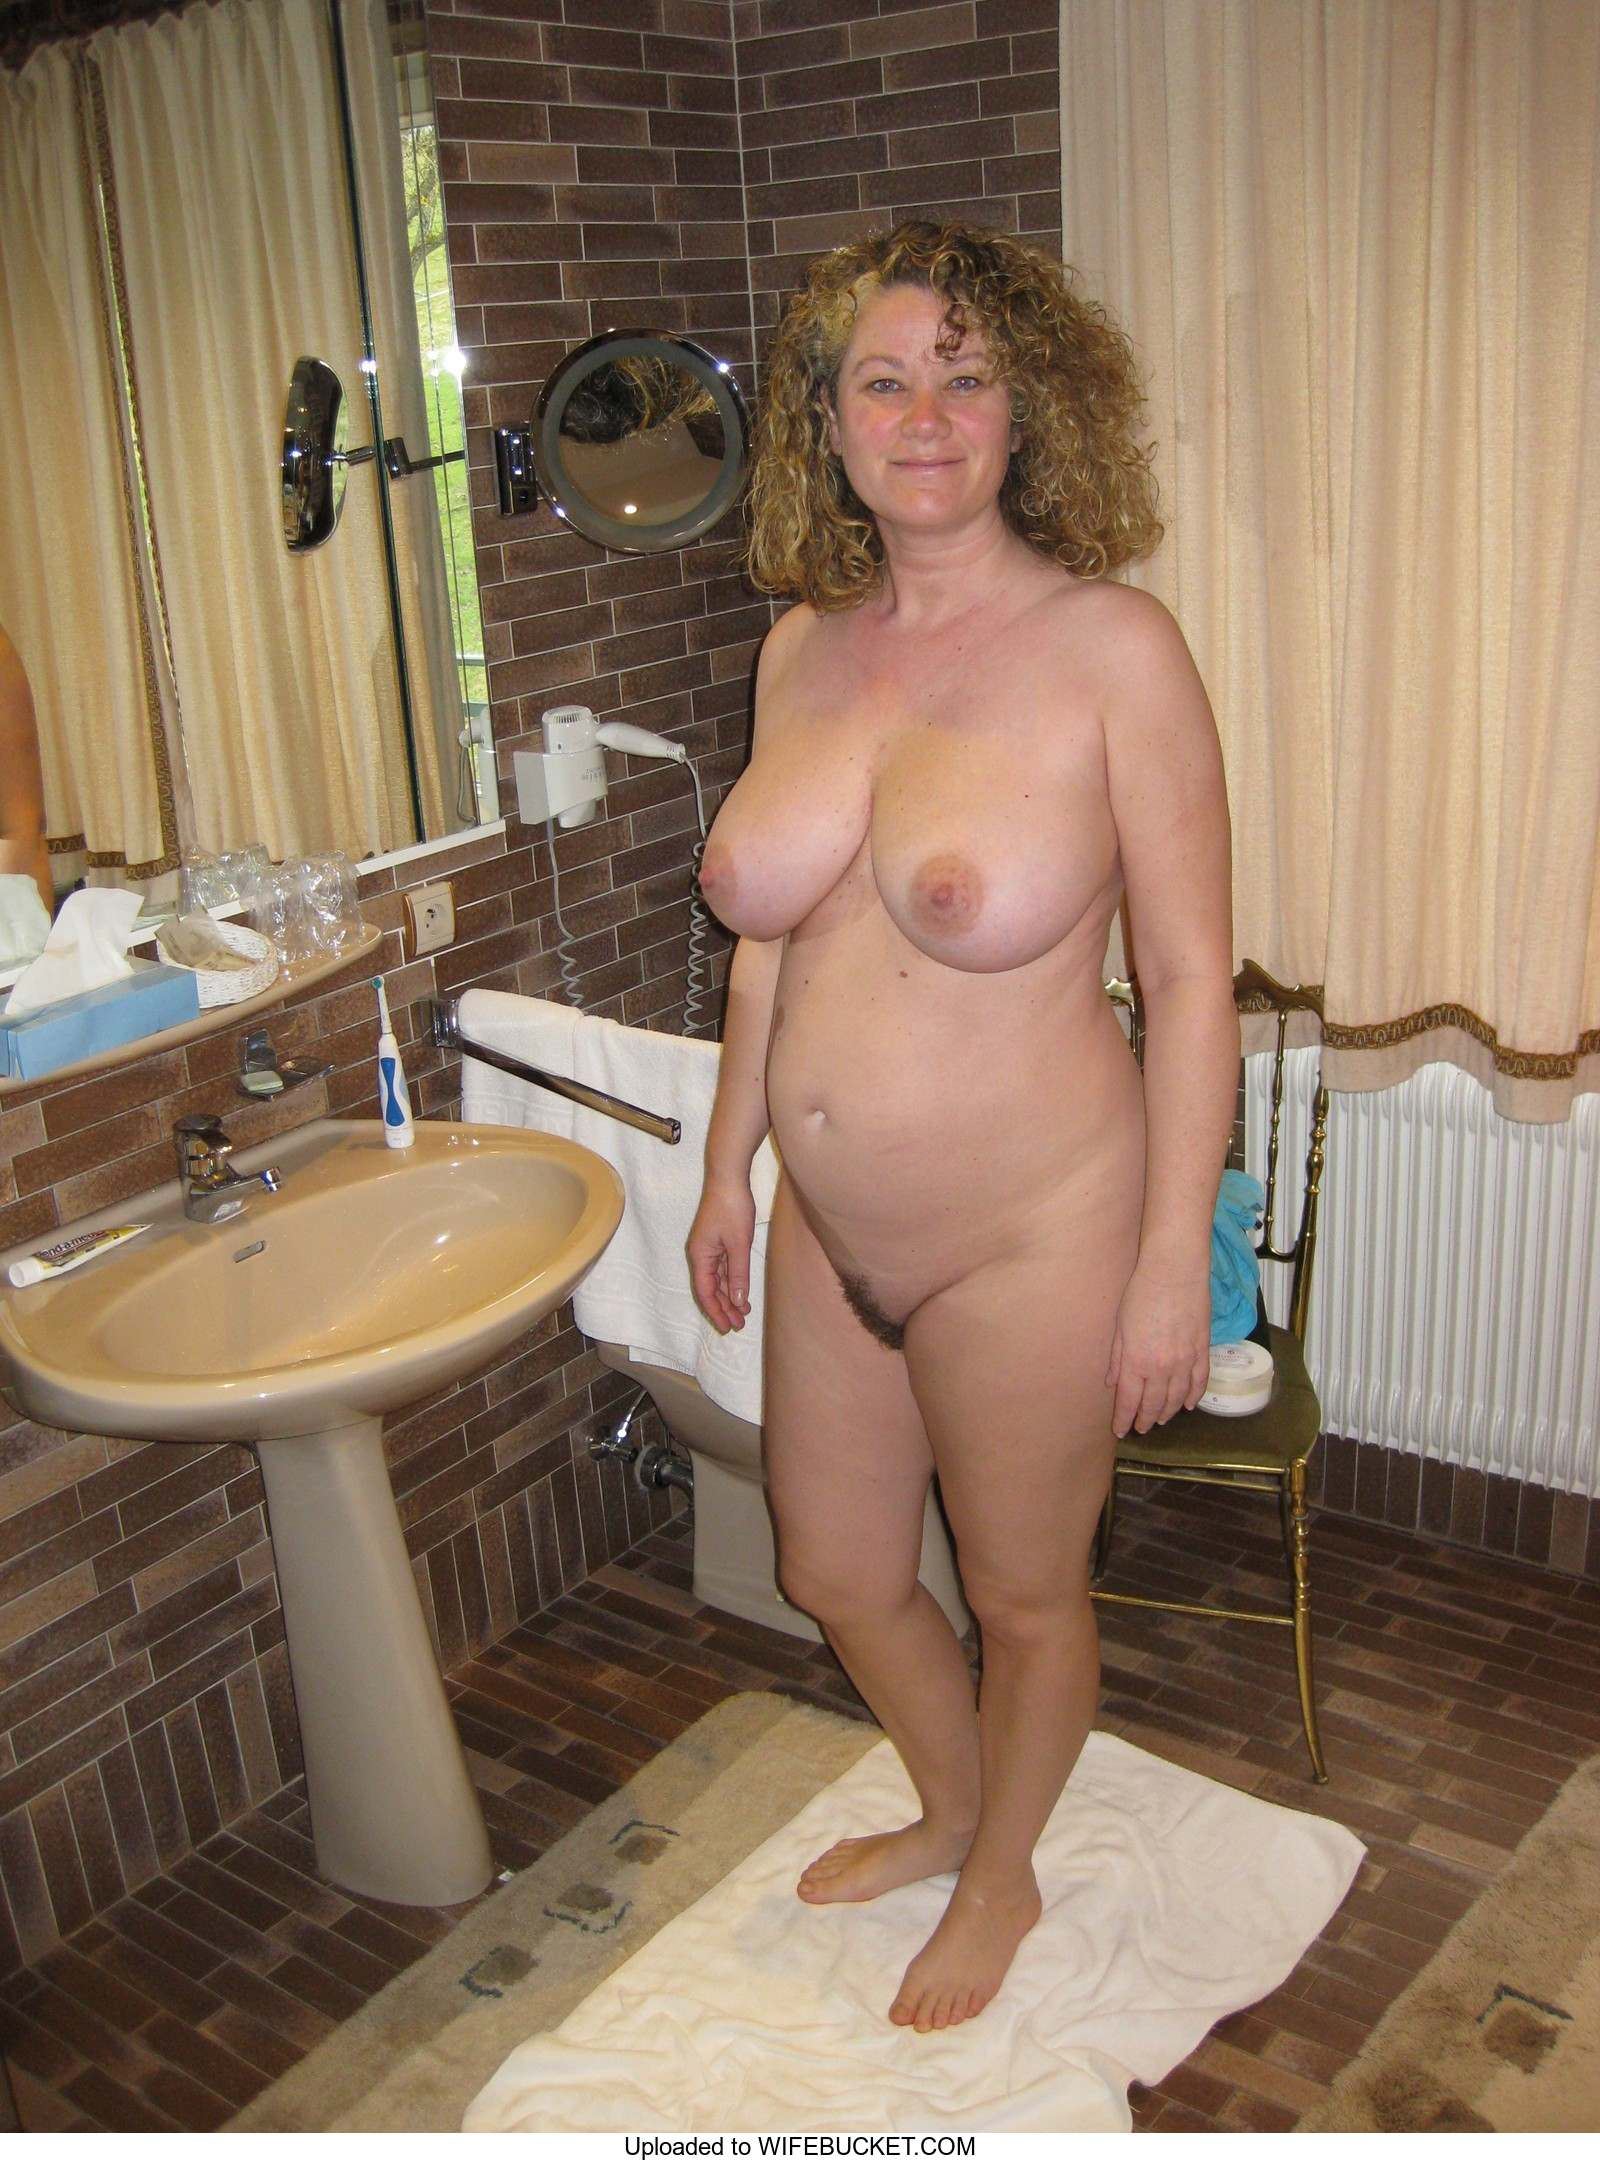 39 User-Uploaded Photos Of Real Wives Naked  Wifebucket